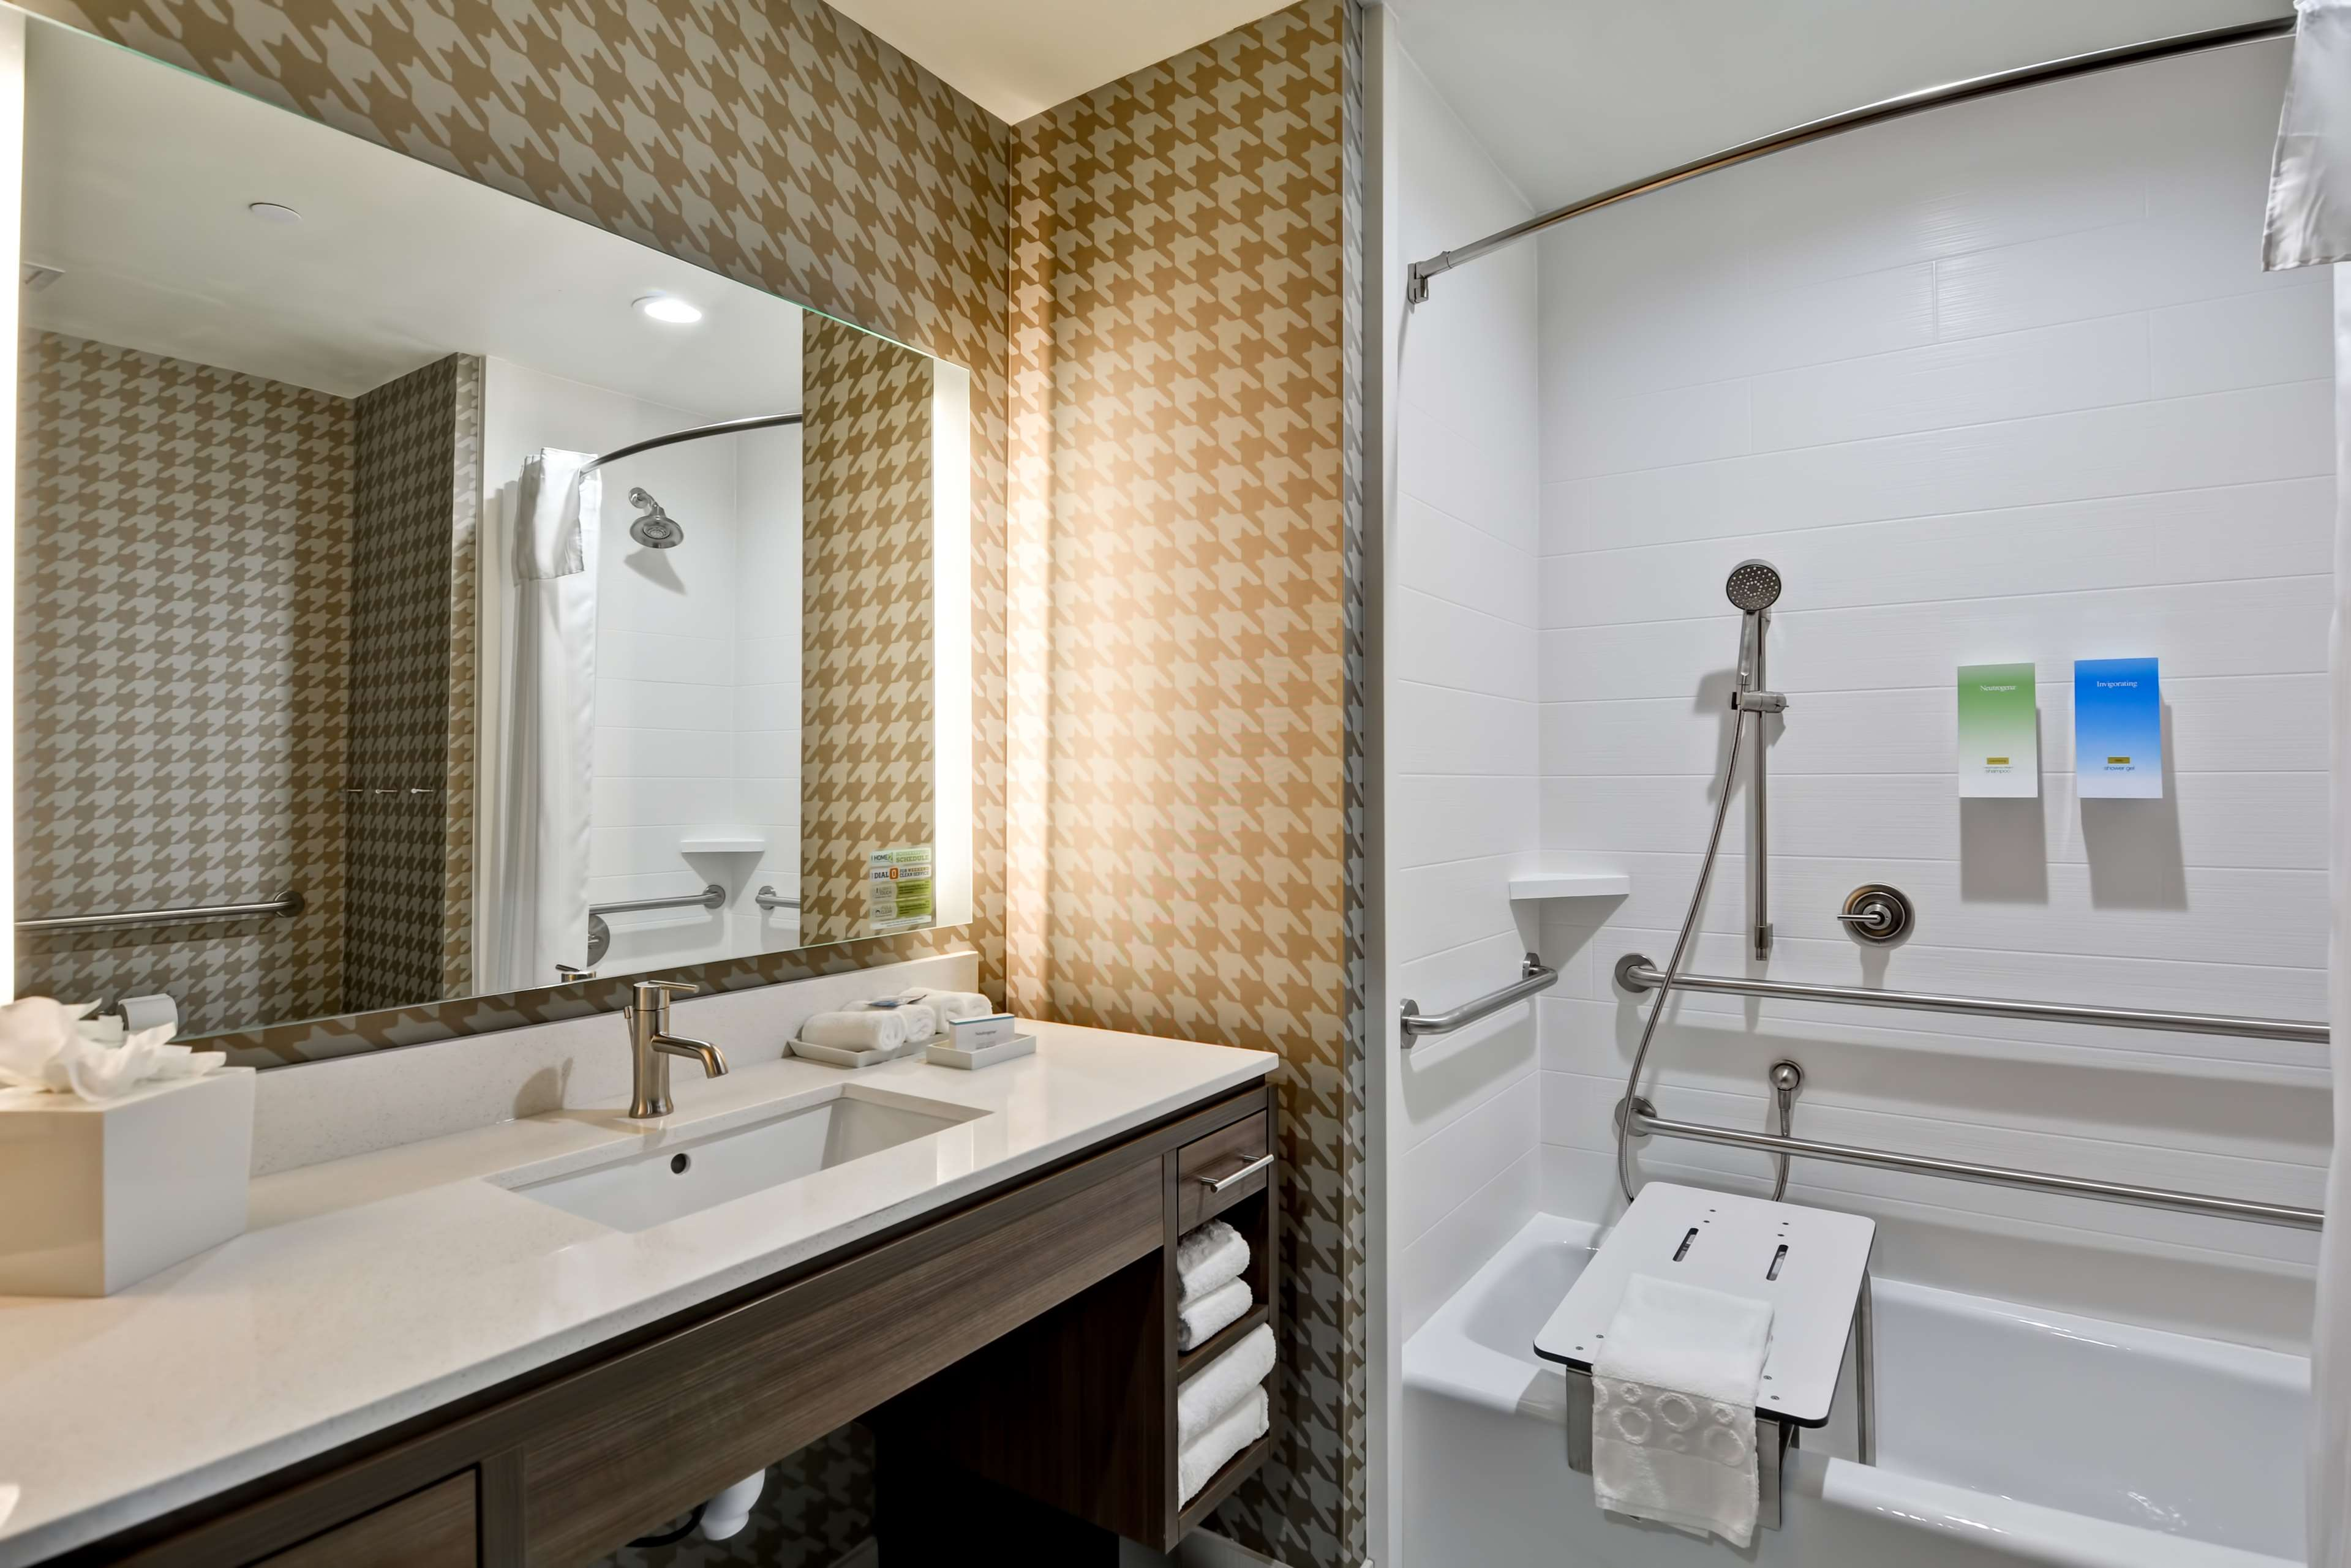 Home2 Suites by Hilton OKC Midwest City Tinker AFB image 25